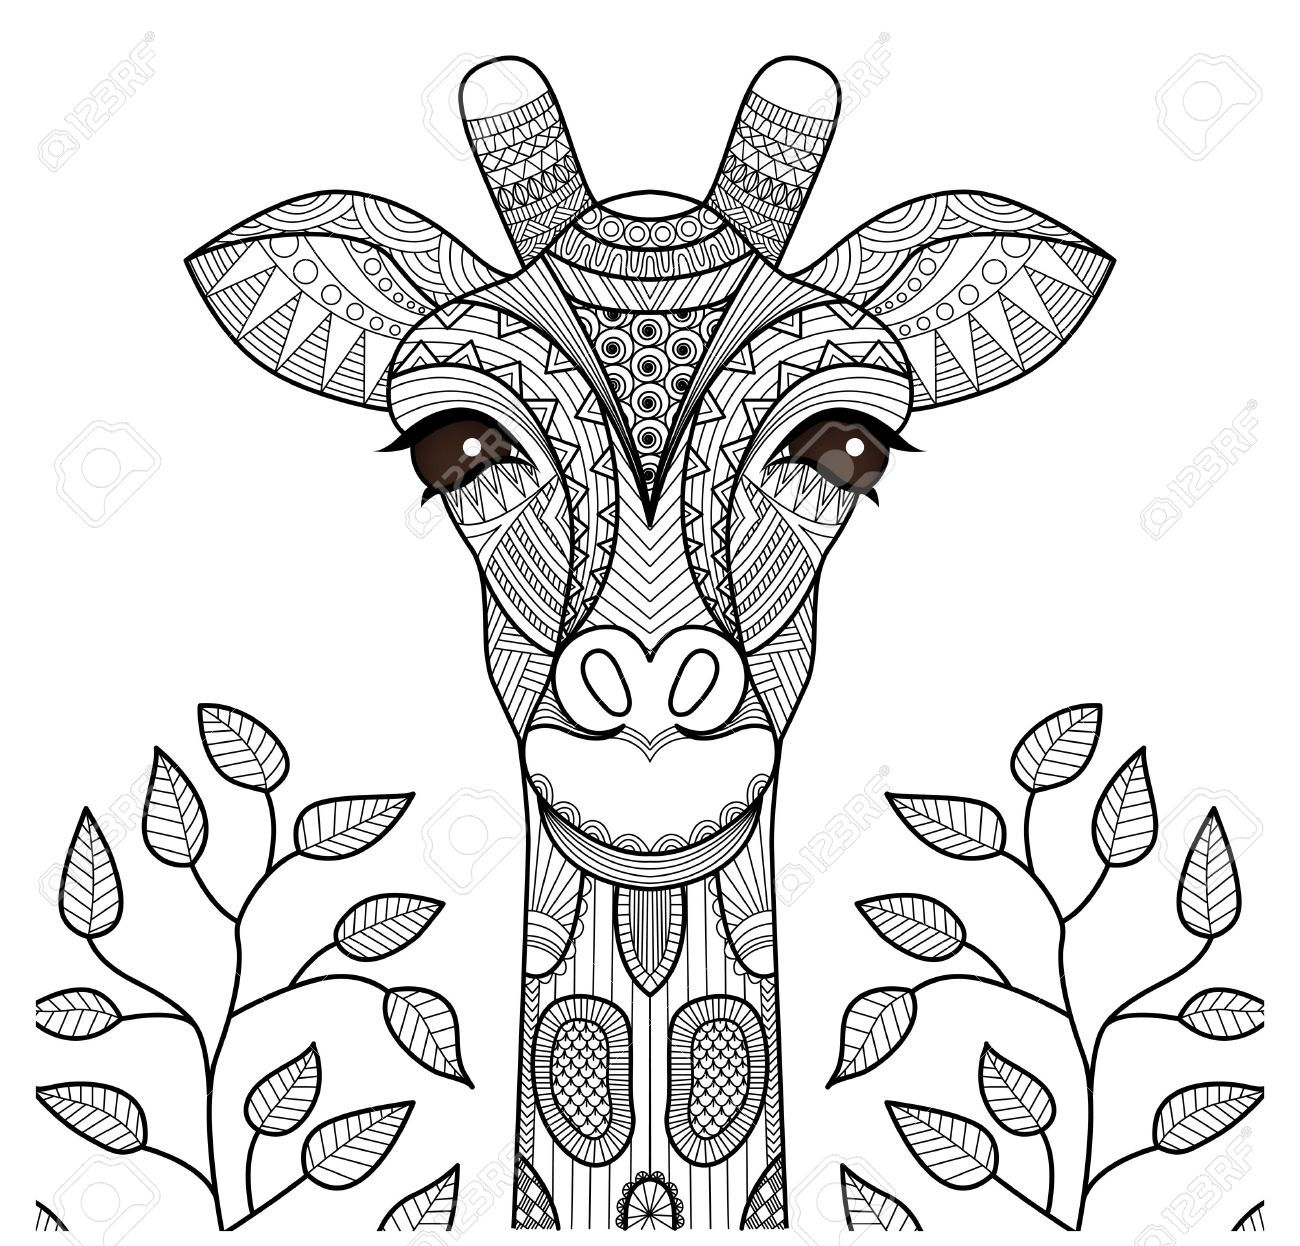 Zentangle Giraffe Head For Coloring Page Shirt Design And So